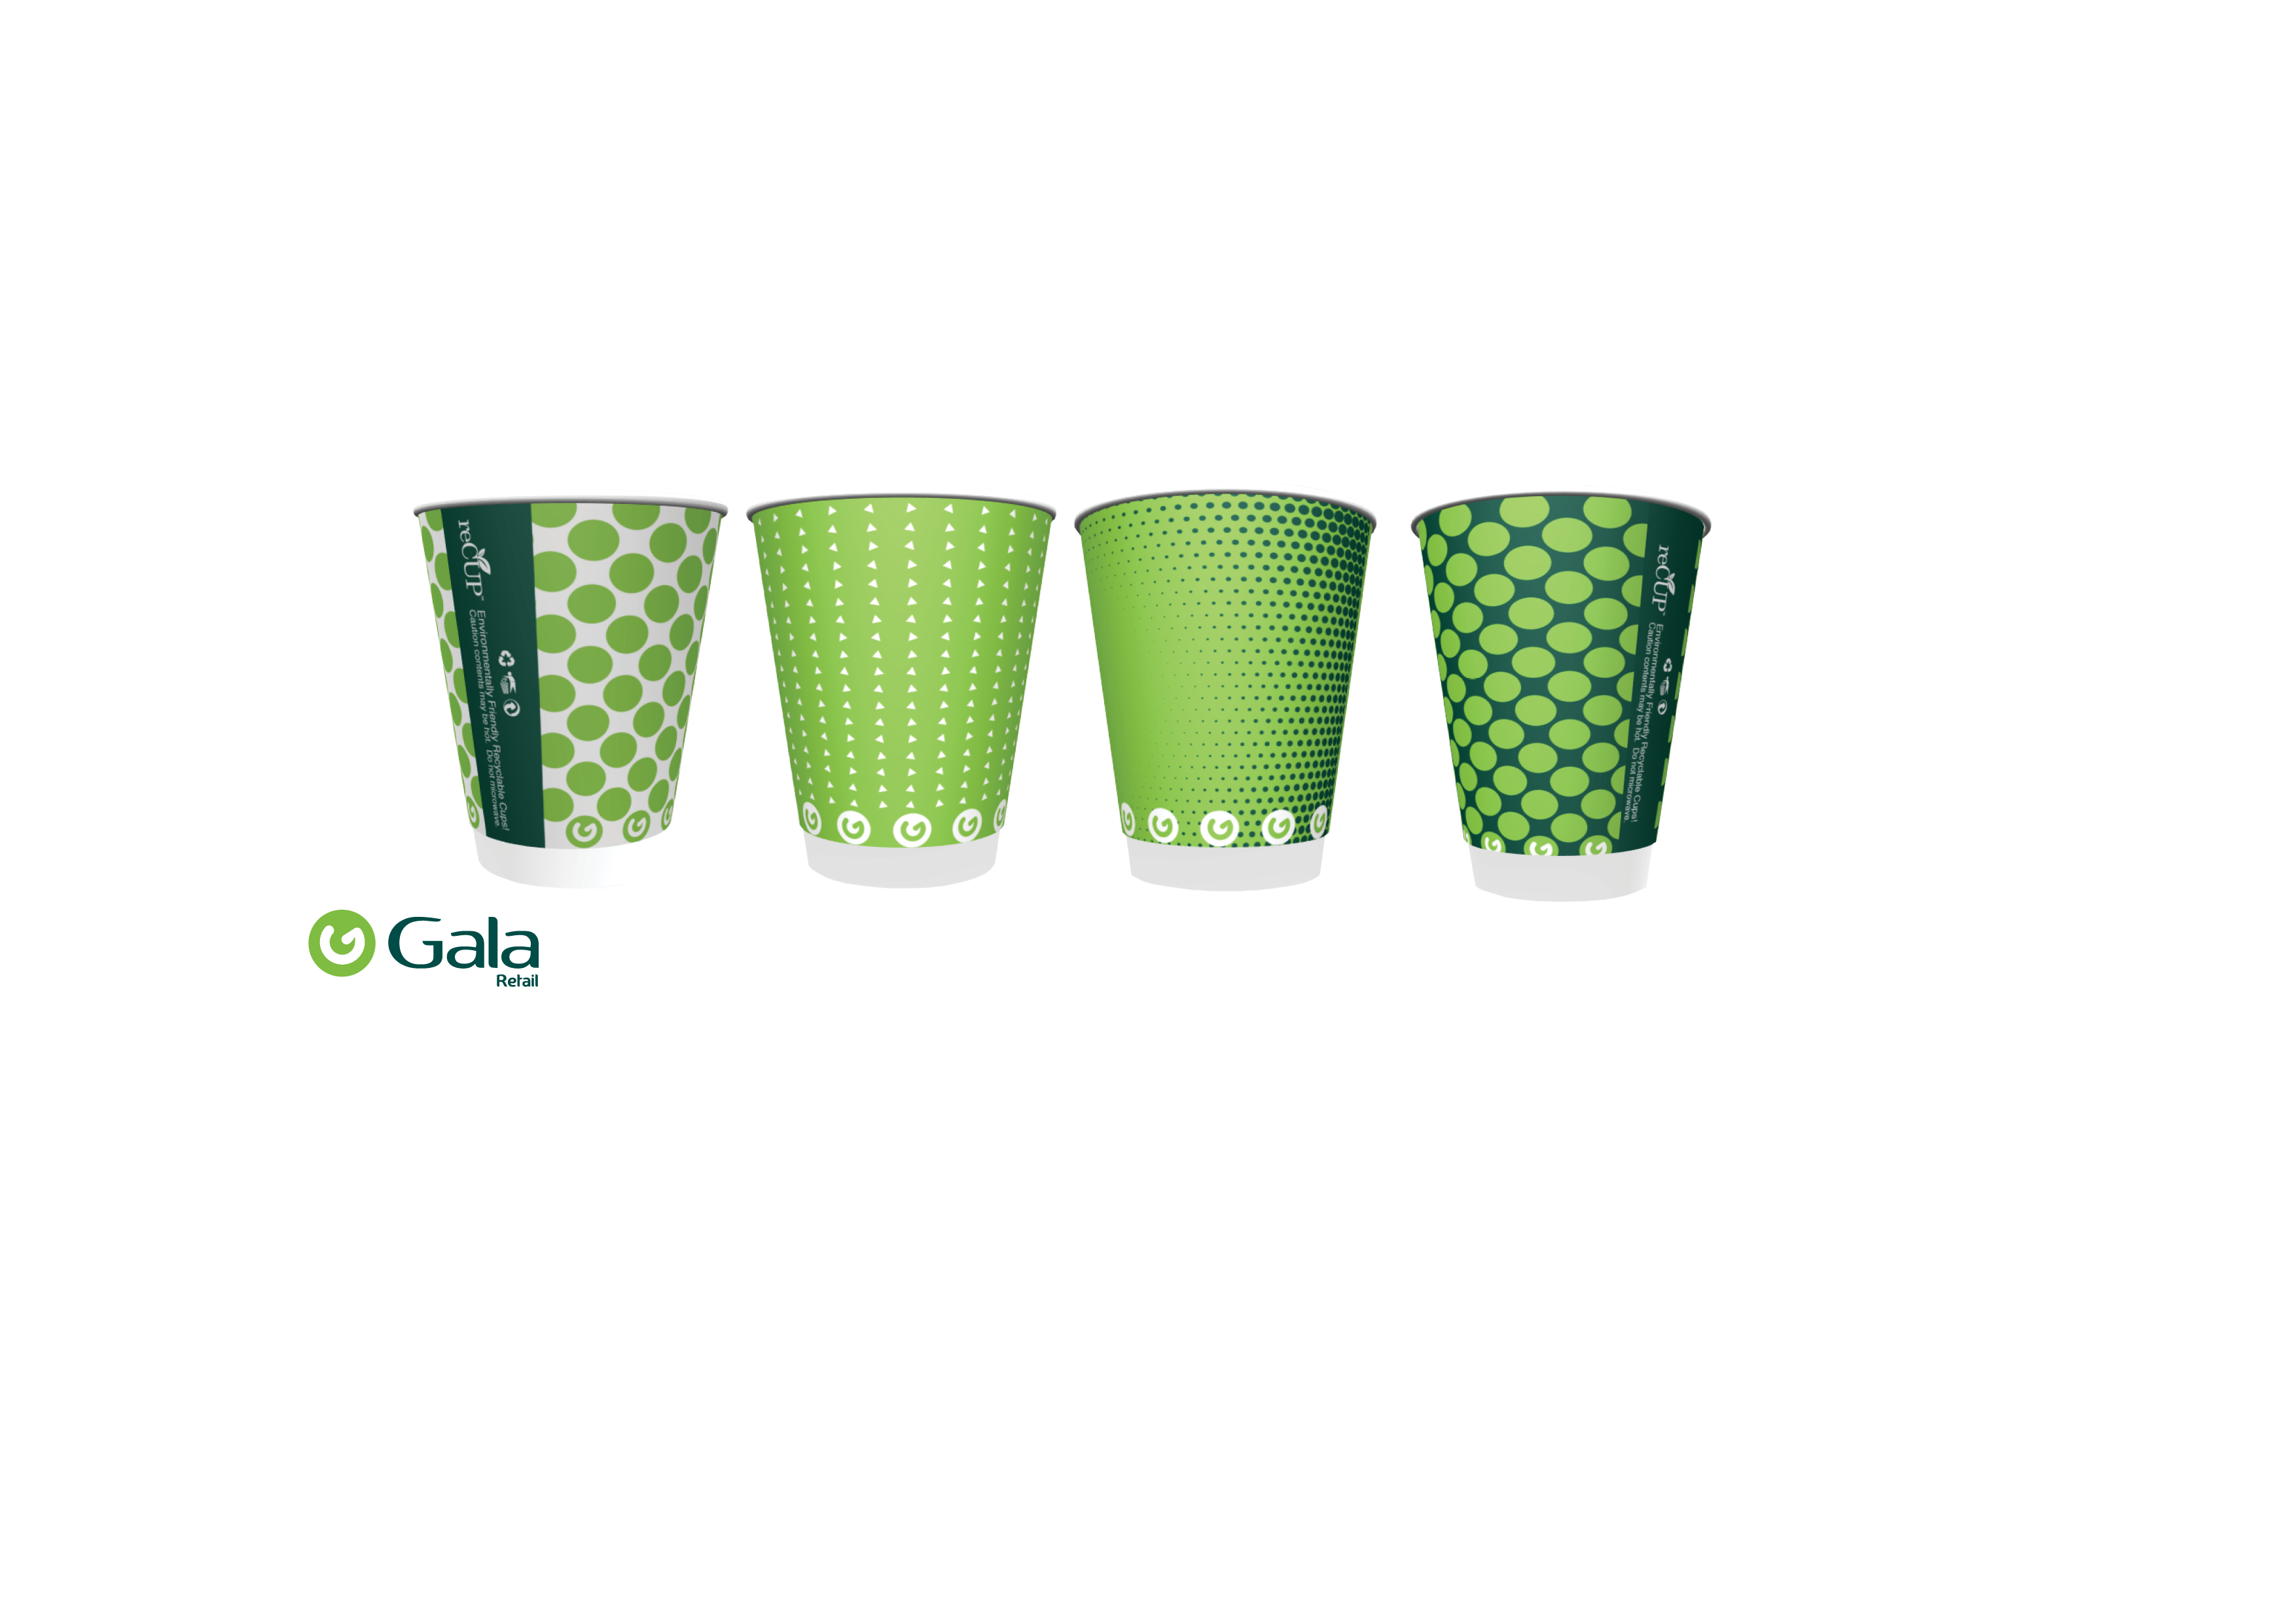 Gala introduces recyclable takeaway cups